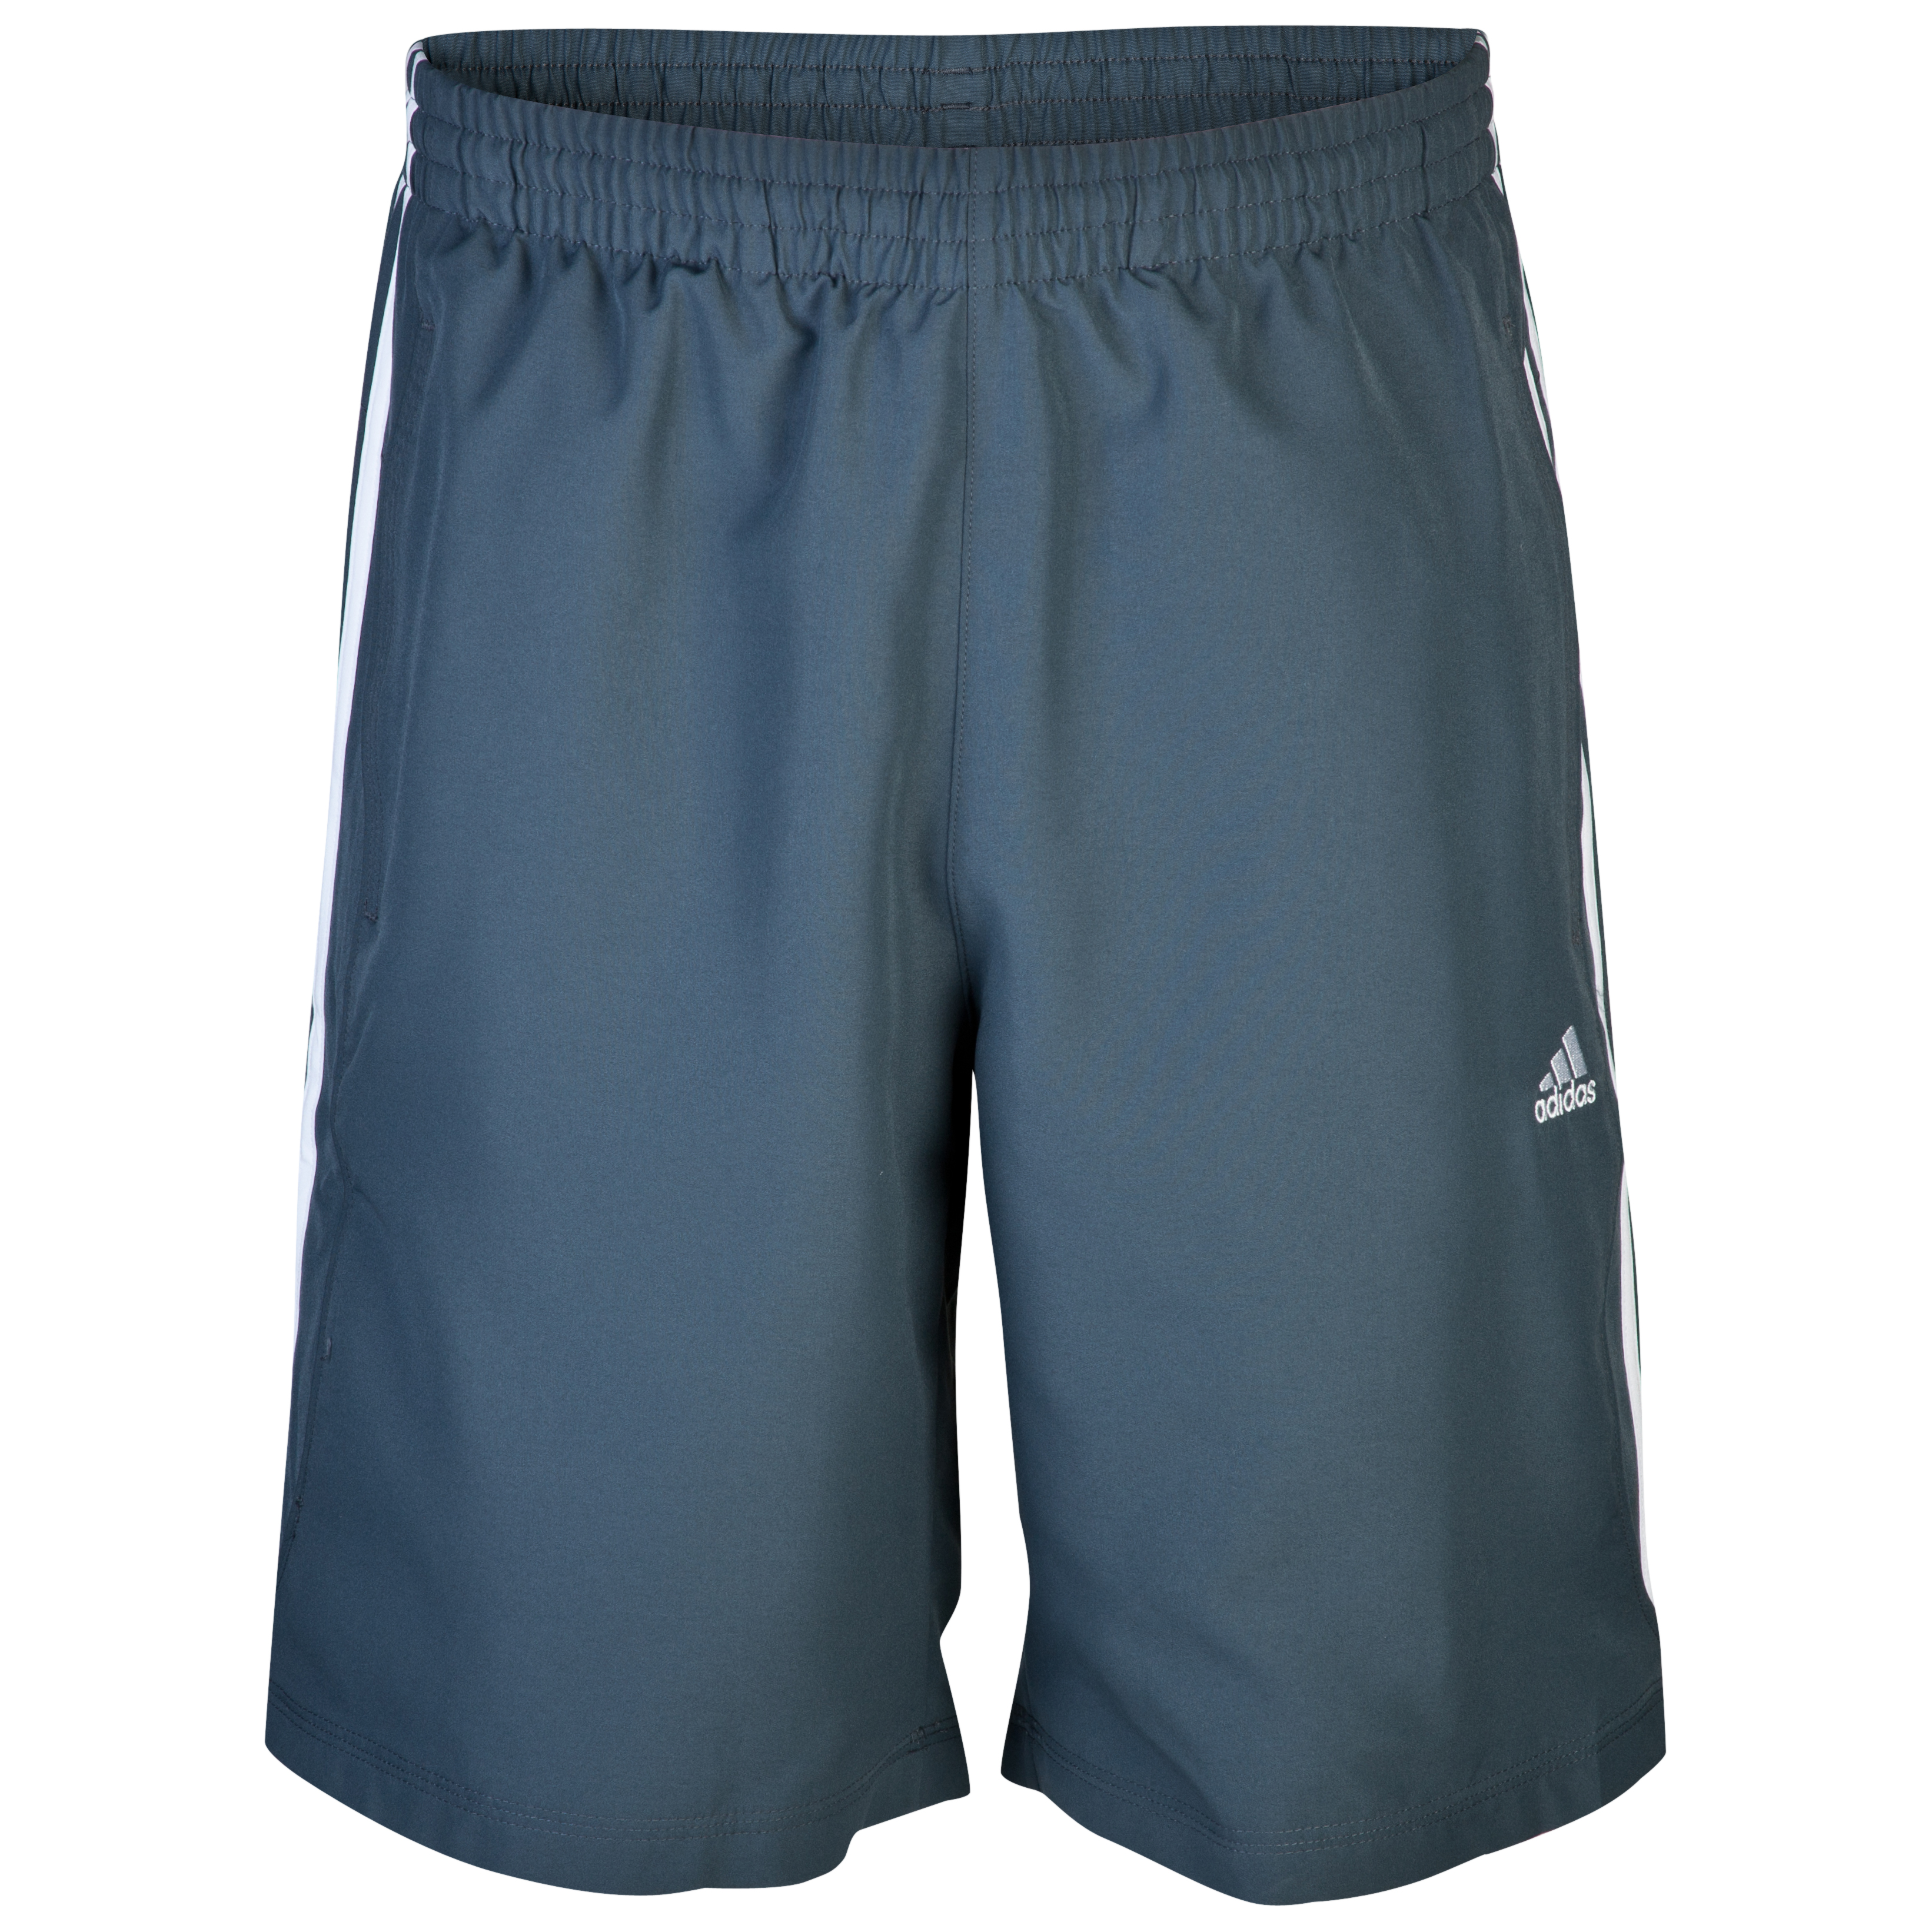 adidas Essentials 3 Stripe Long Short - Dark Onix